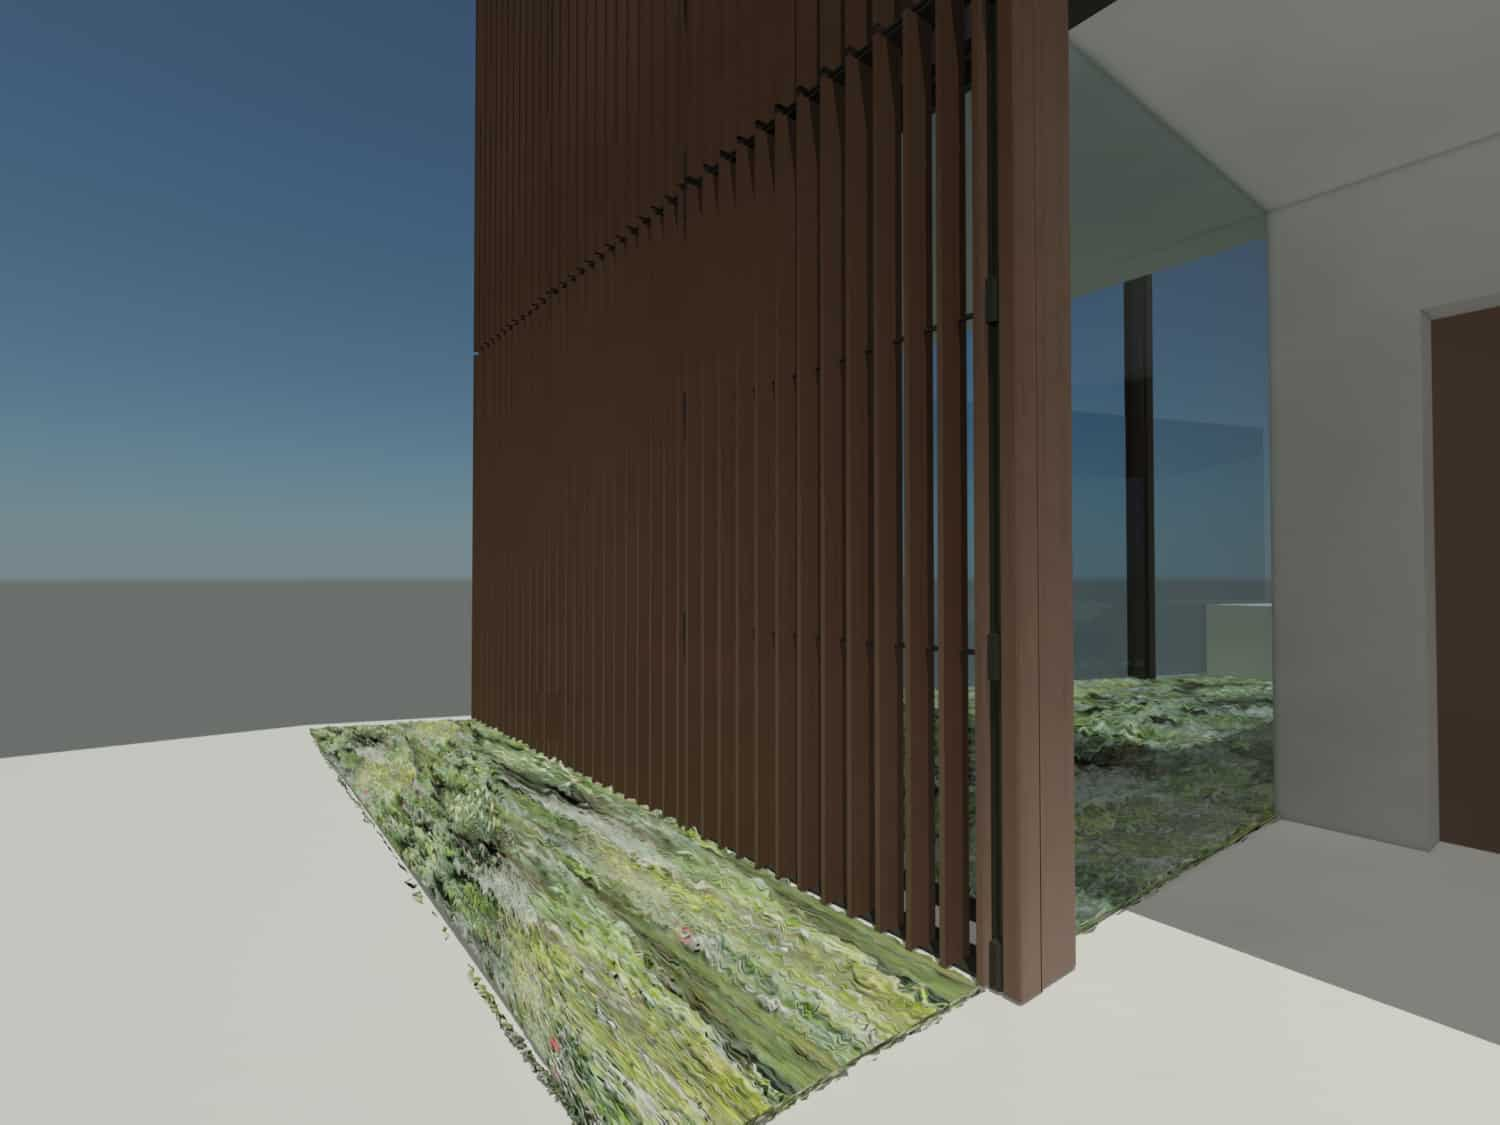 CS_Tramonto Stair_Entry Screen_Study_Page_09